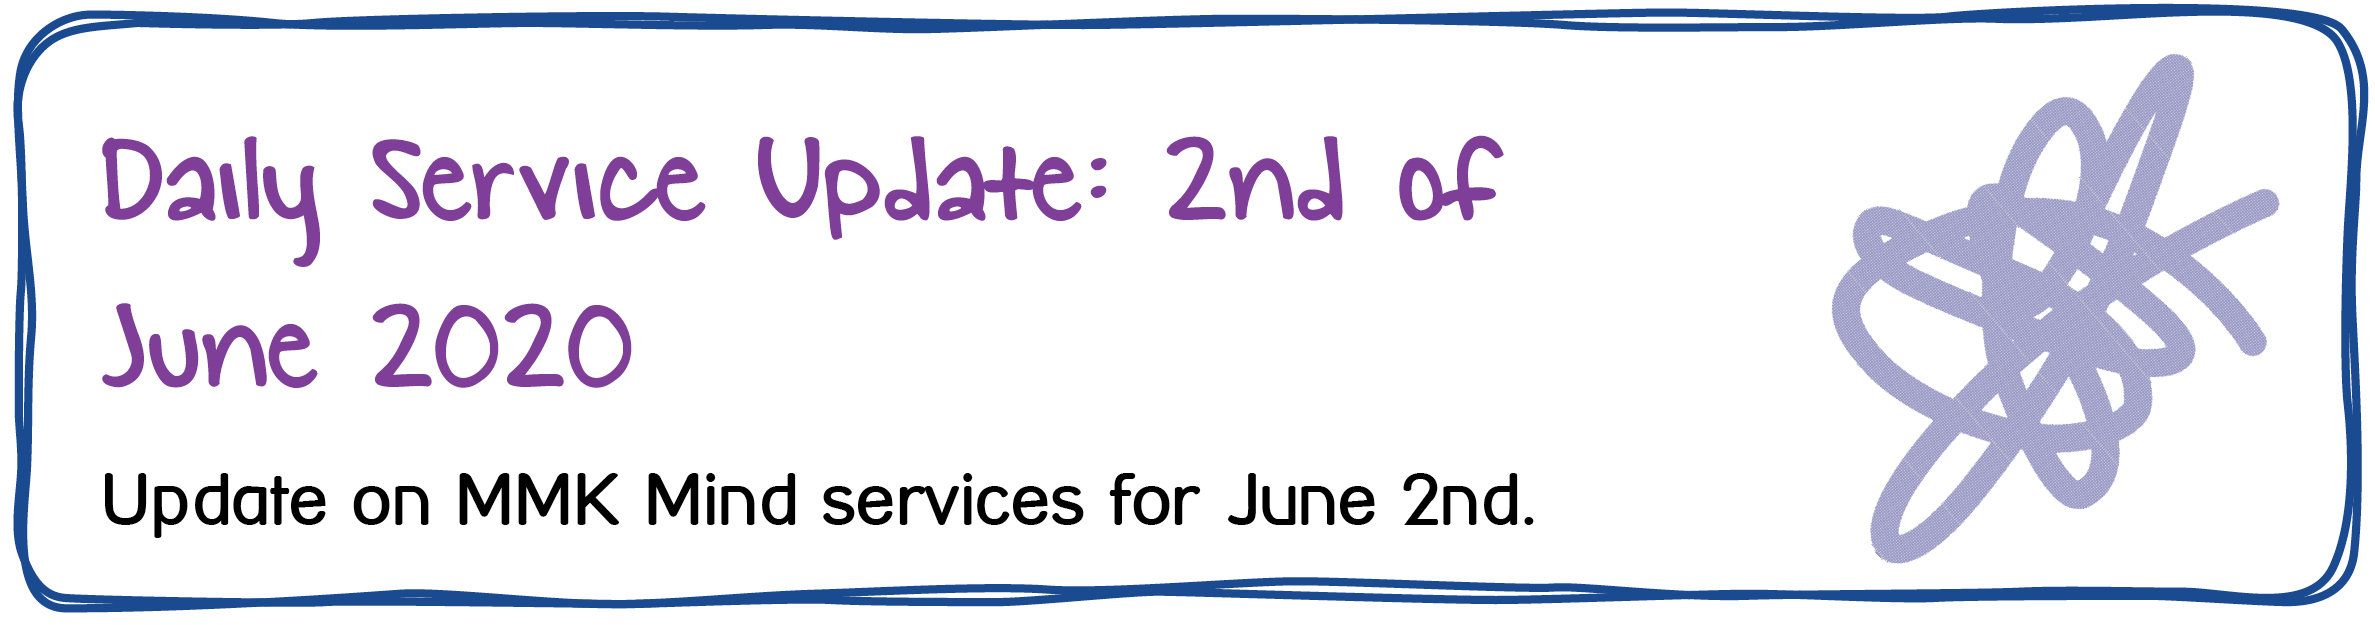 Daily Service Update: 2nd of June 2020. Update on MMK Mind services for June 2nd.